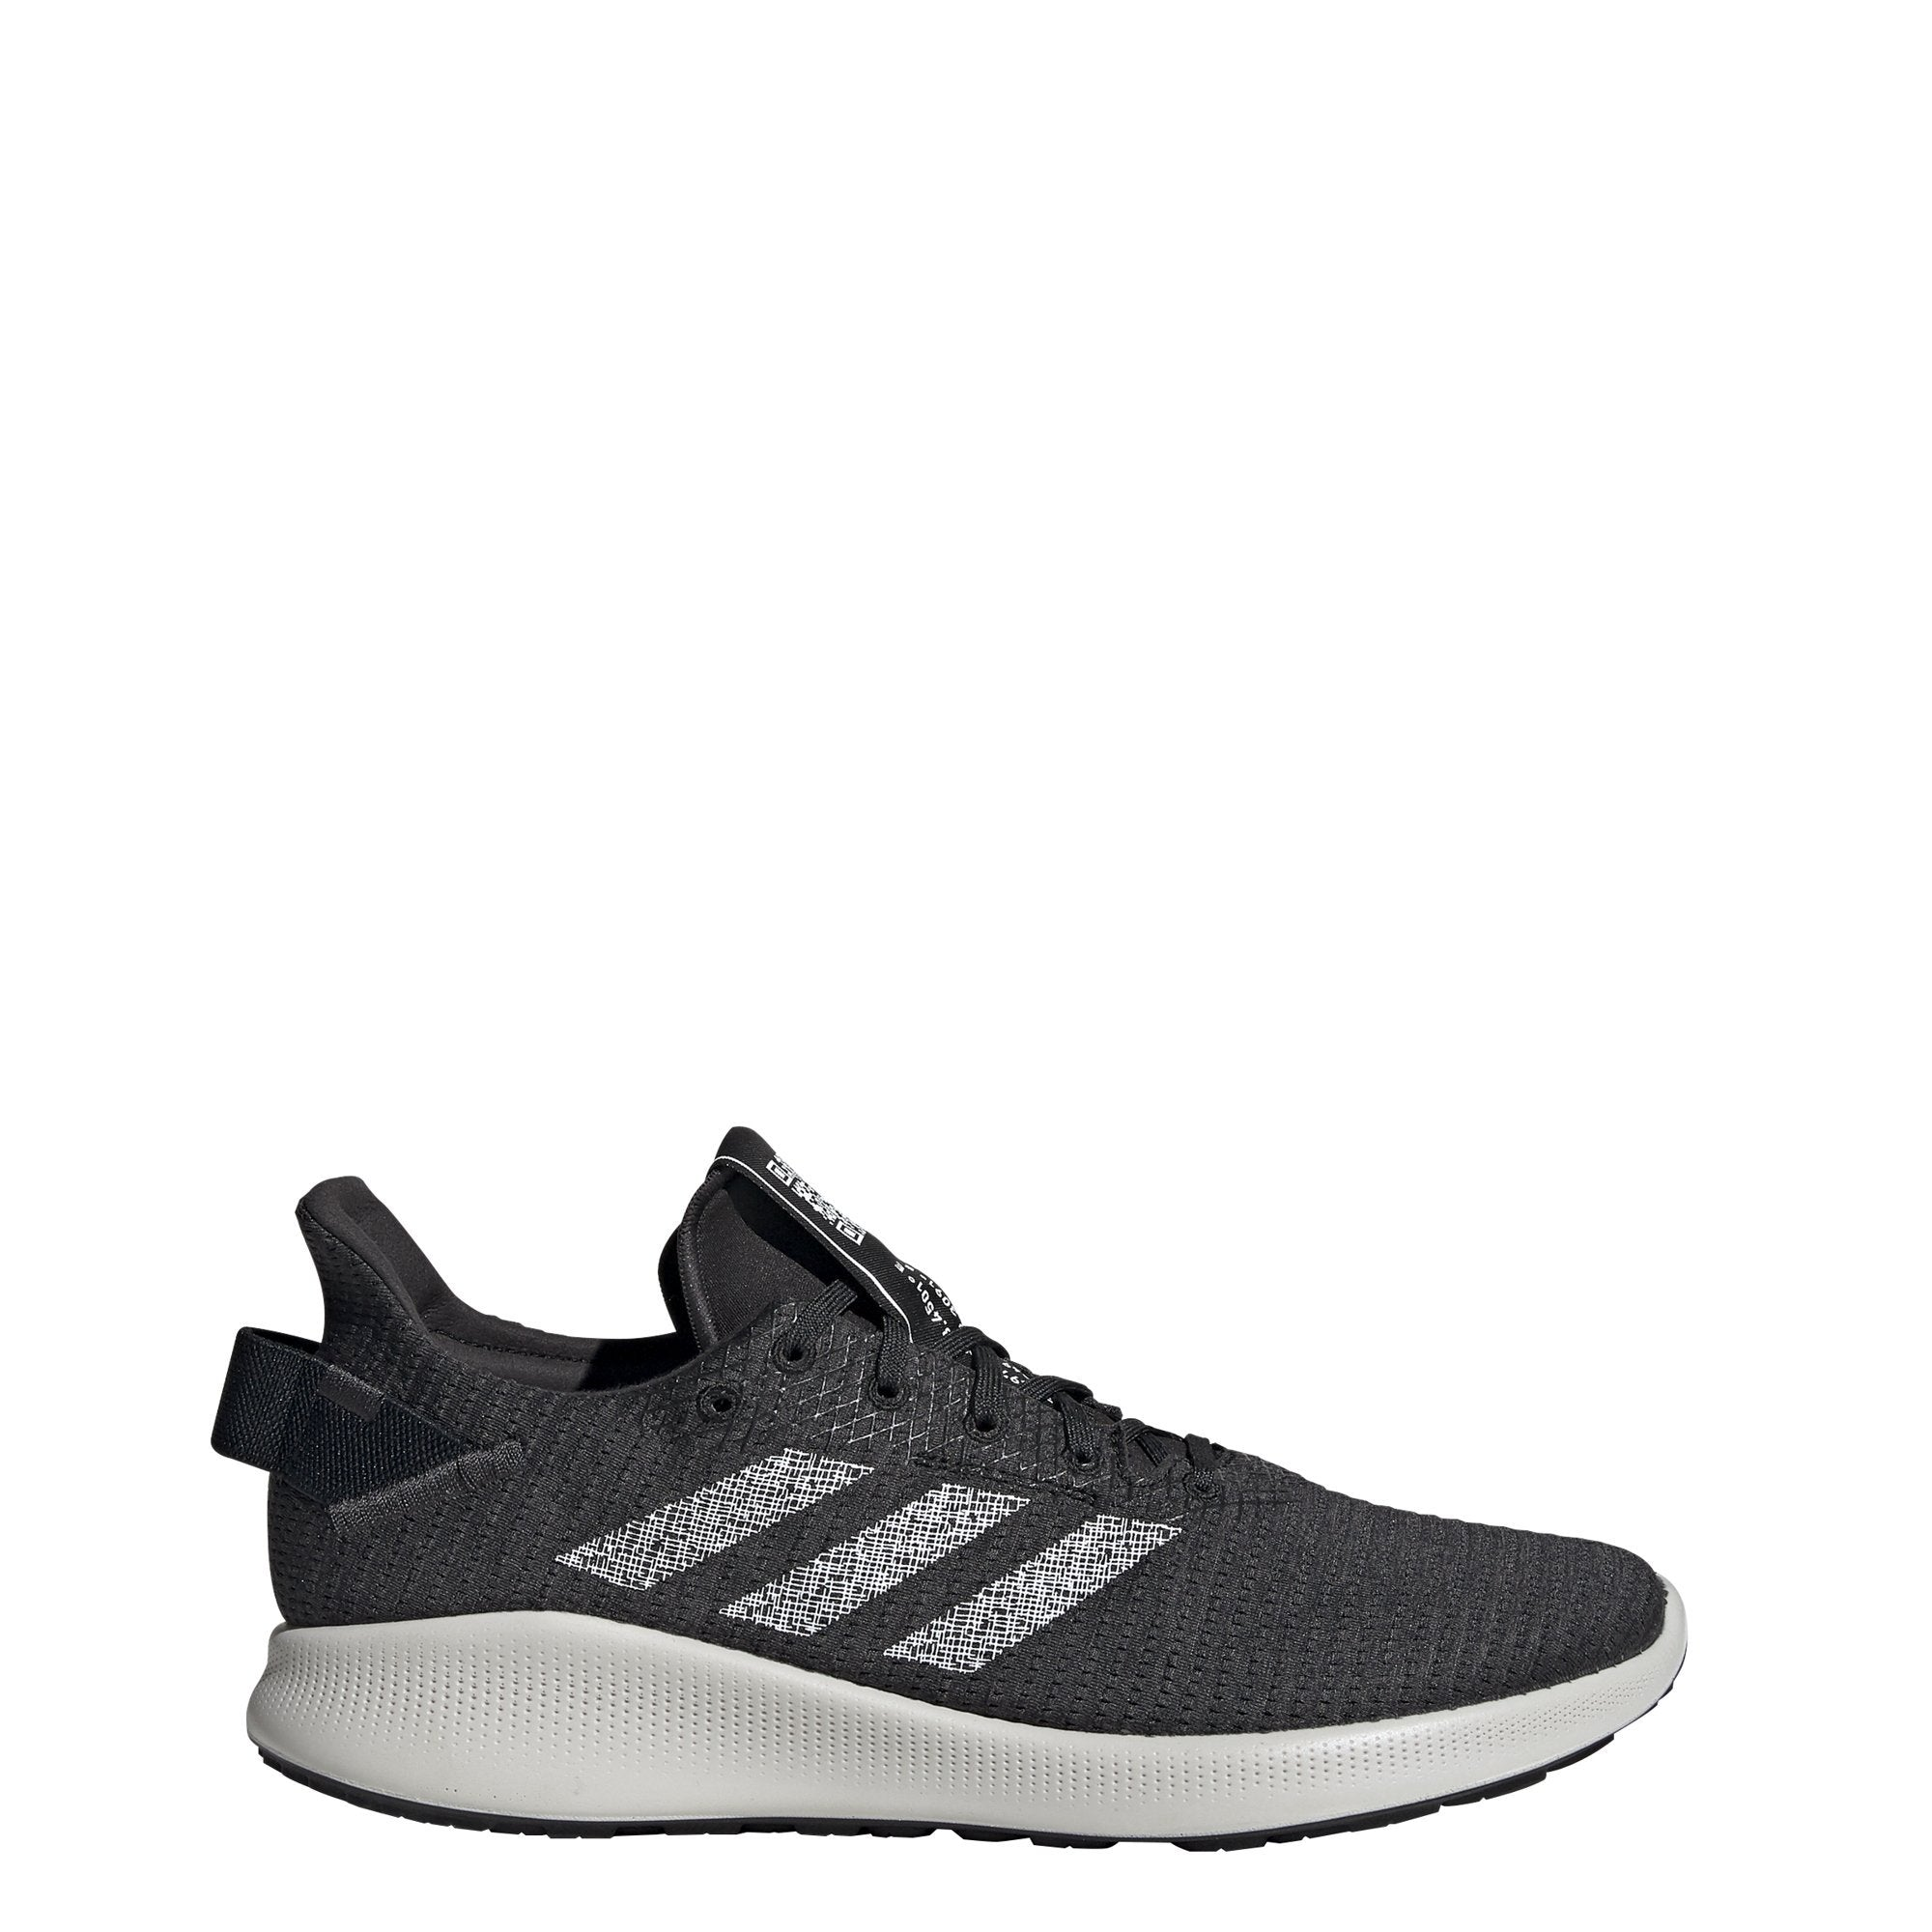 Adidas Mens Sensebounce + Street Shoes - Core Black/White/Carbon SP-Footwear-Mens Adidas